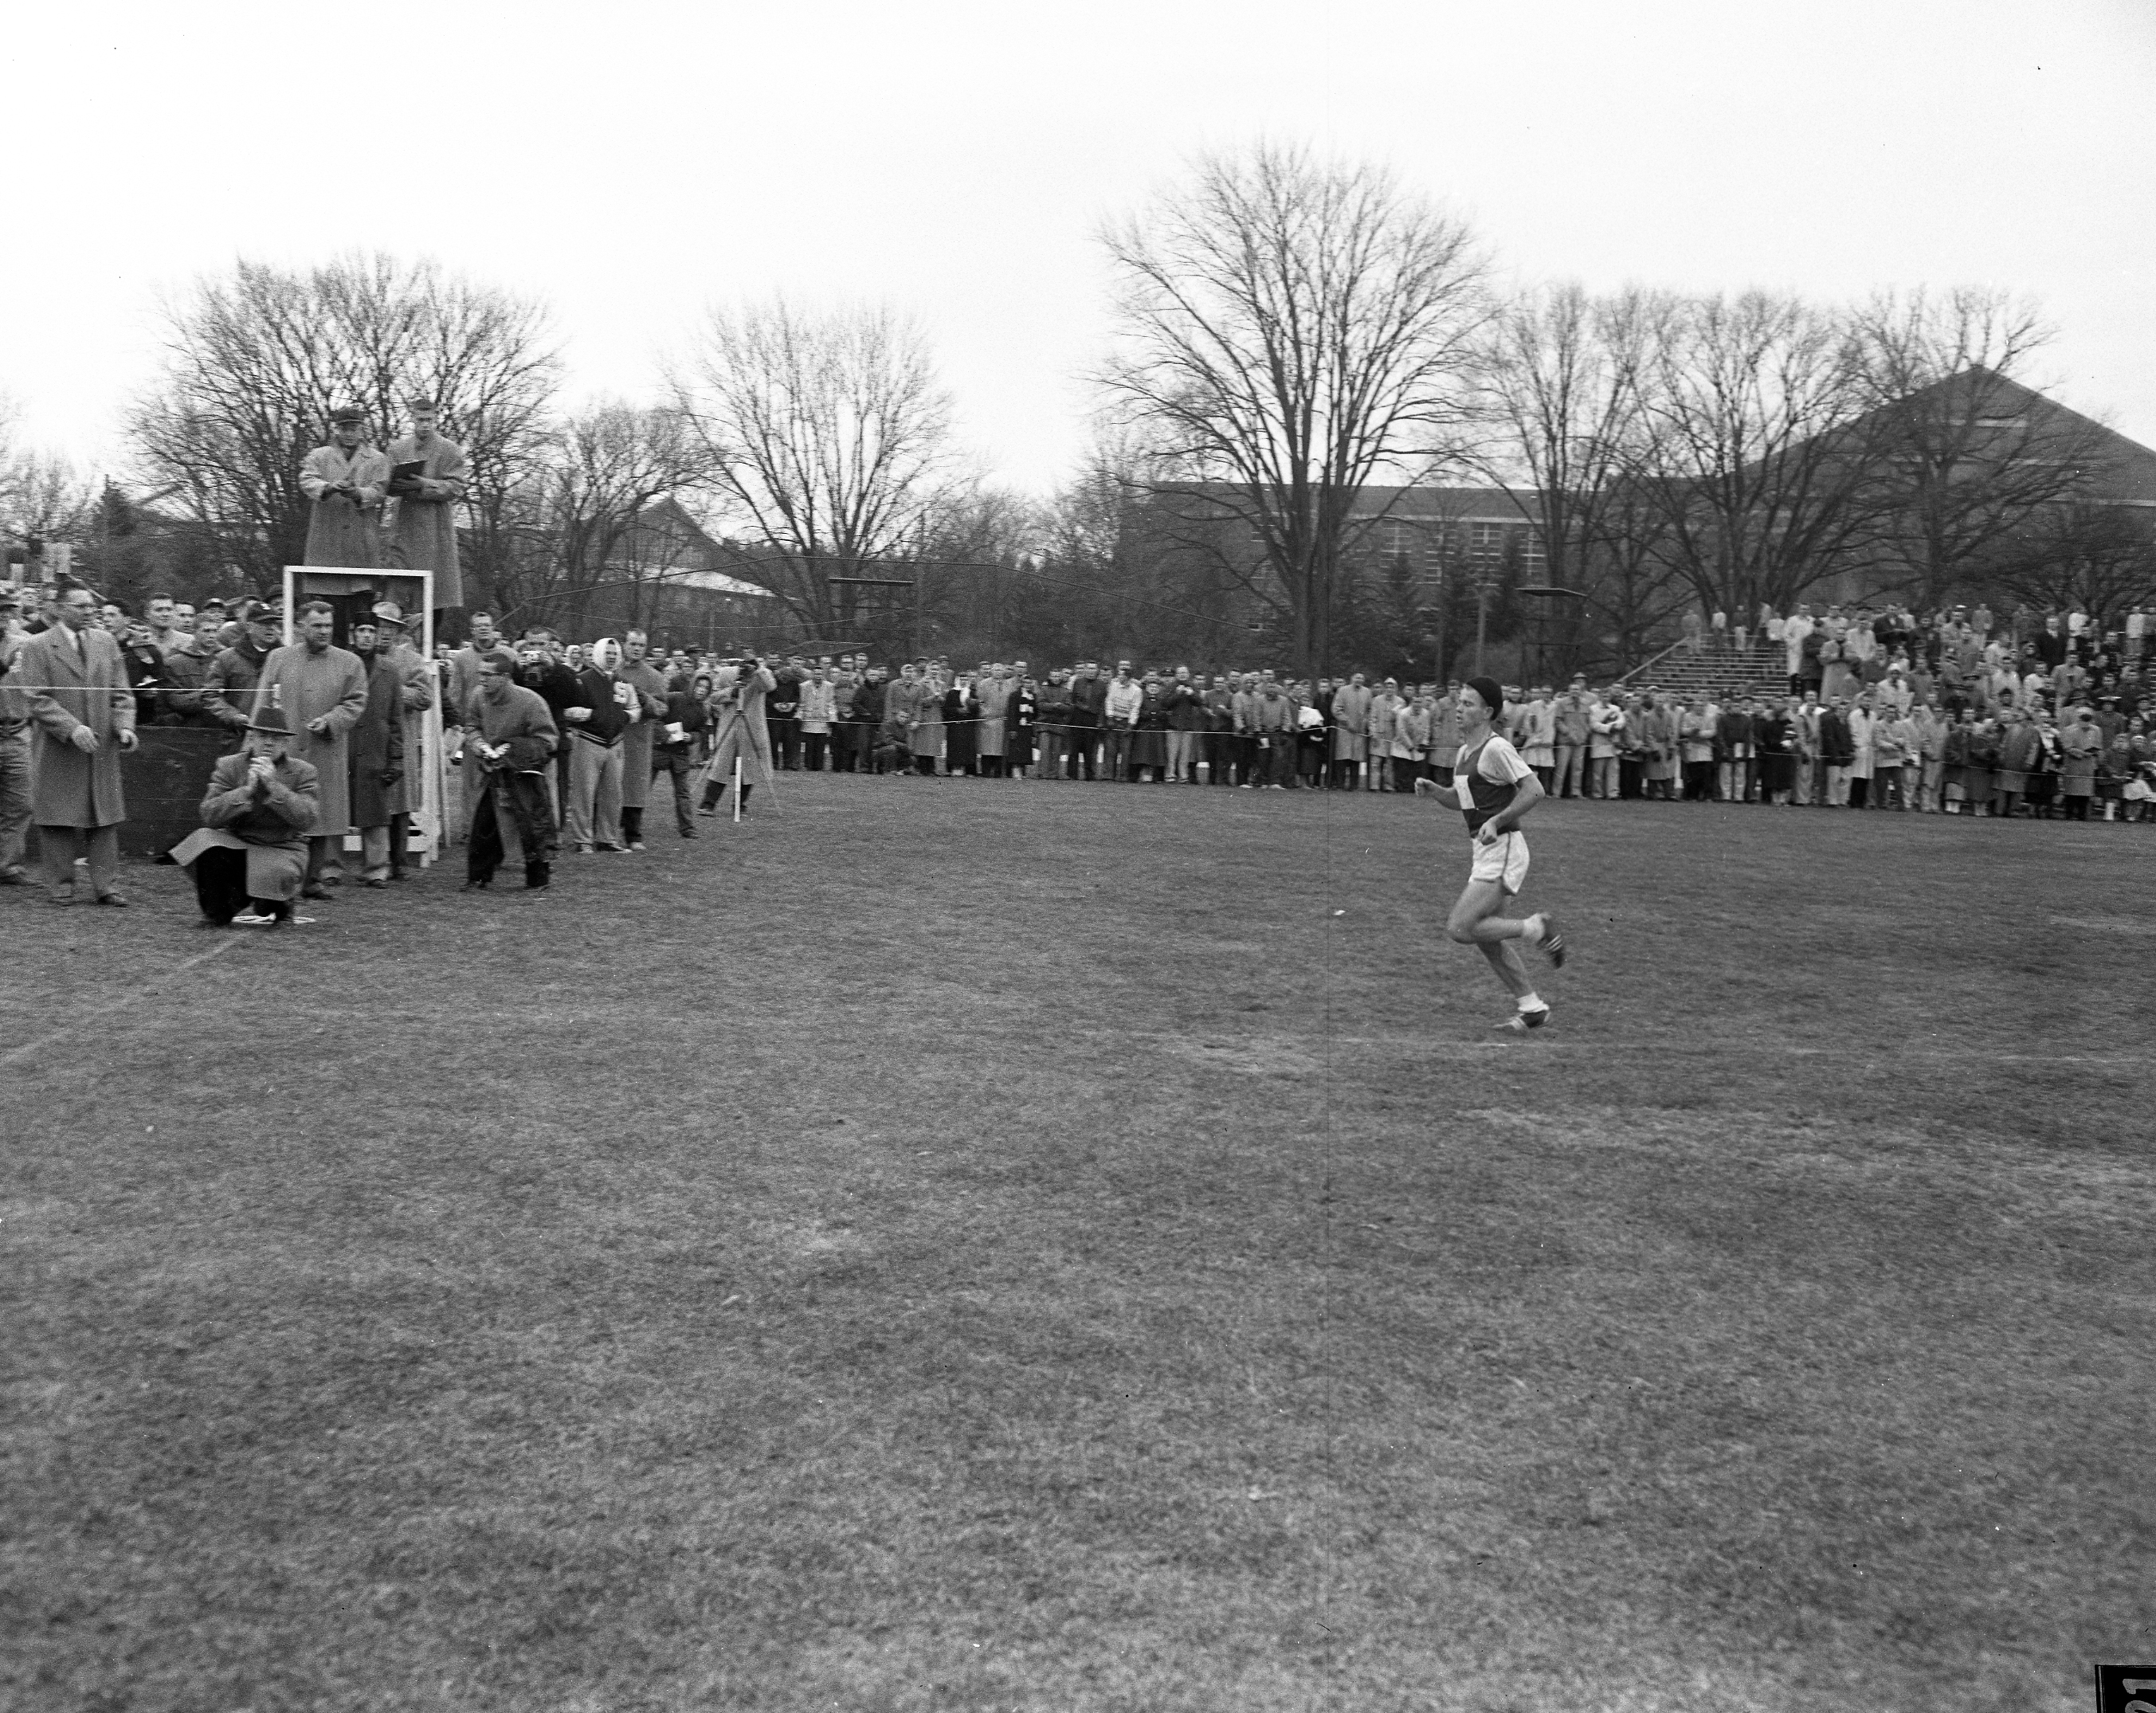 Cross country runner on course, 1957